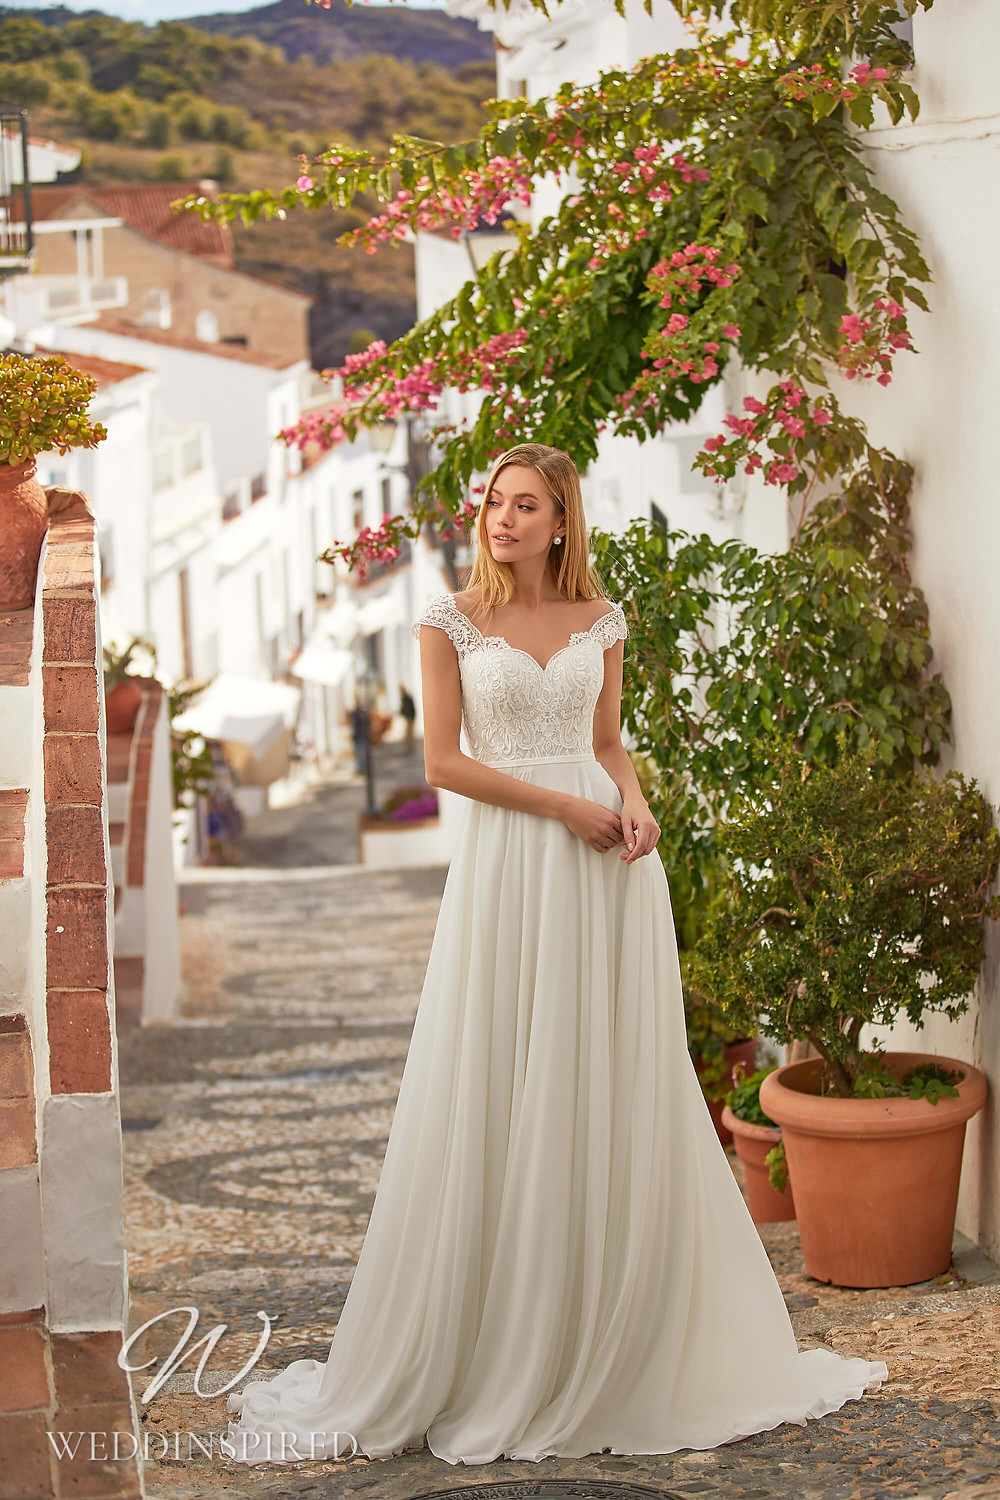 An Essential by Lussano 2021 flowy lace and chiffon A-line wedding dress